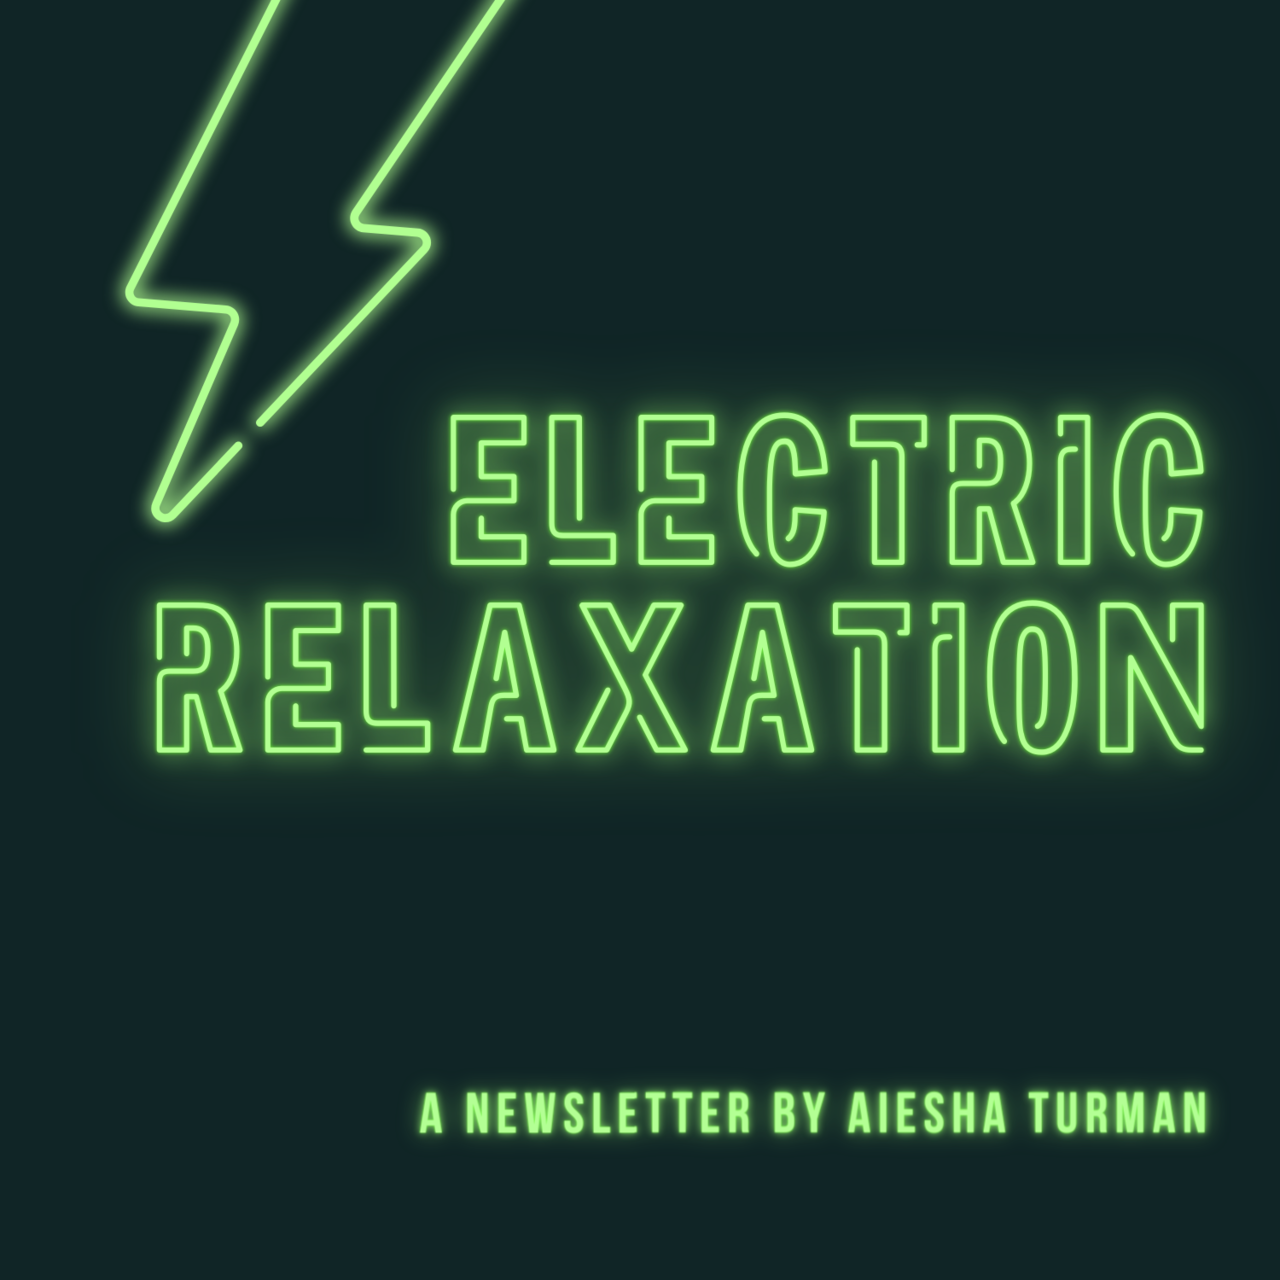 Electric Relaxation: The Newsletter of Dr. Aiesha Turman